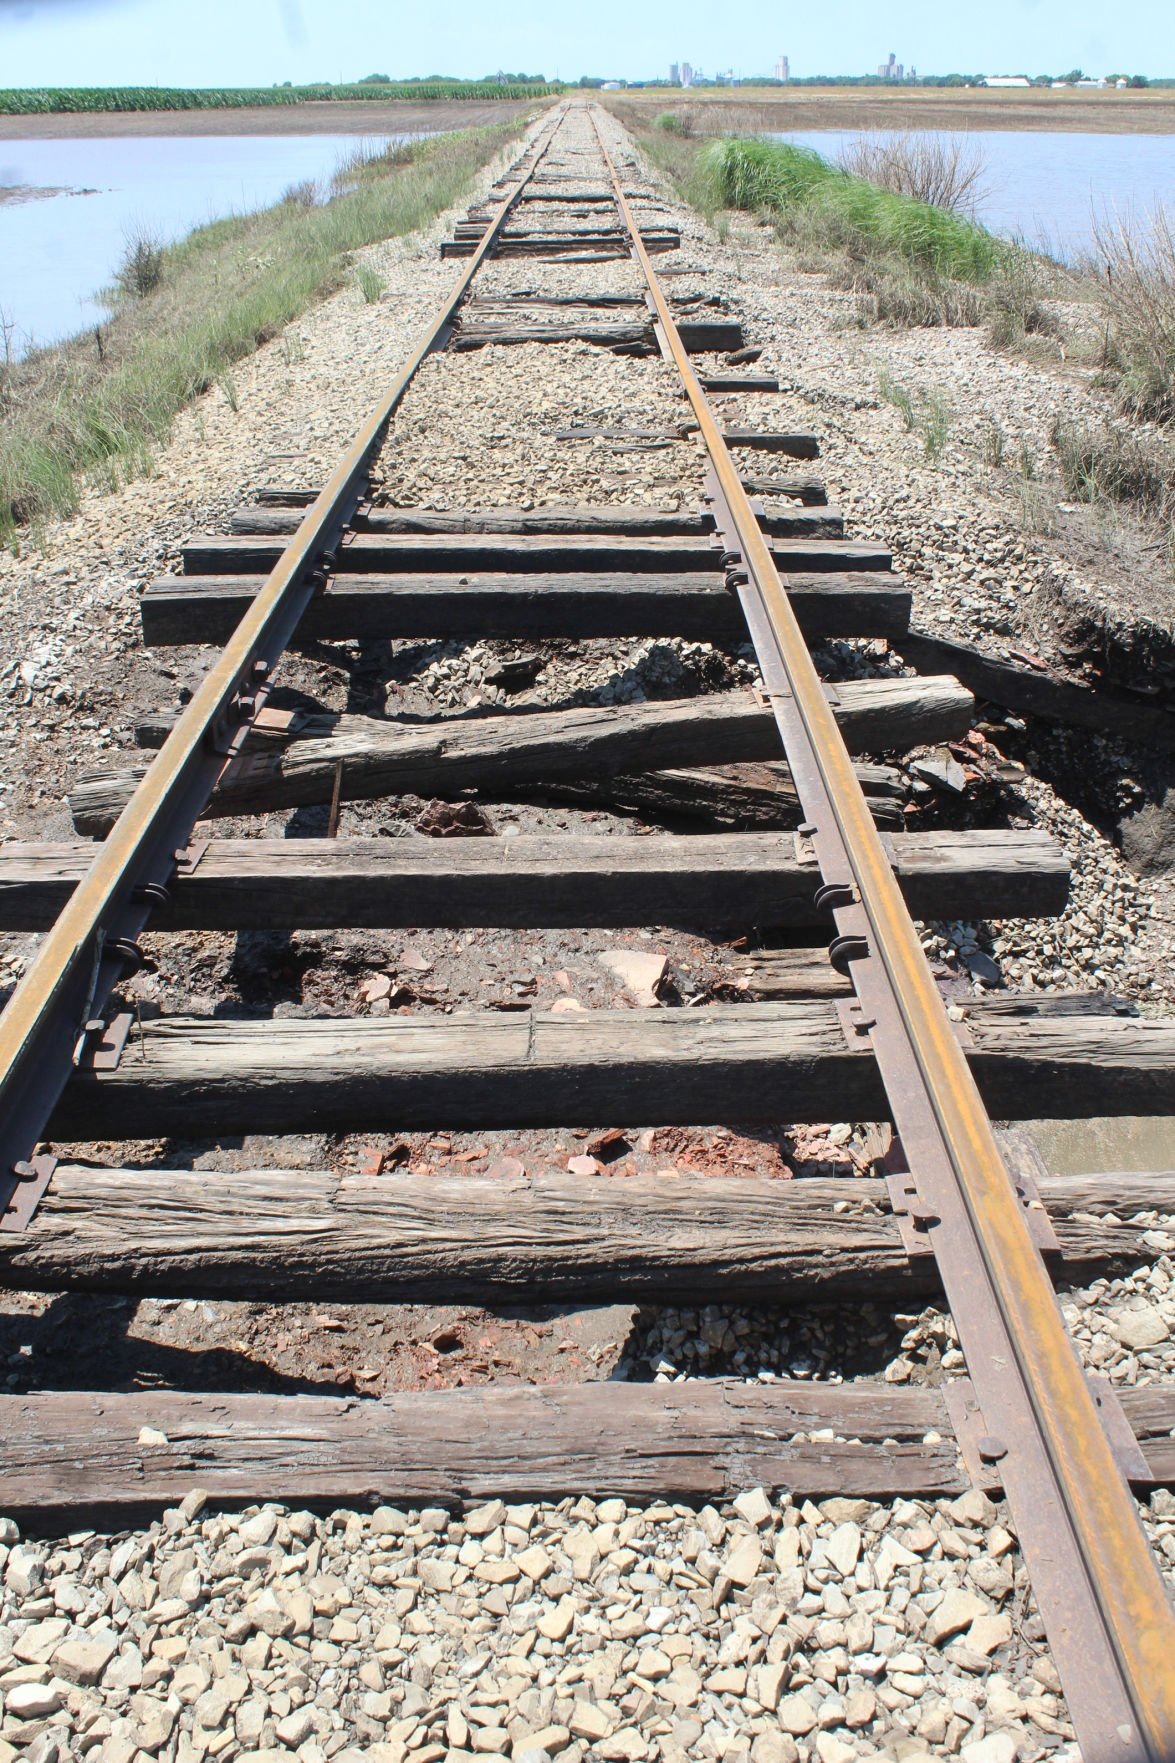 Damaged tracks